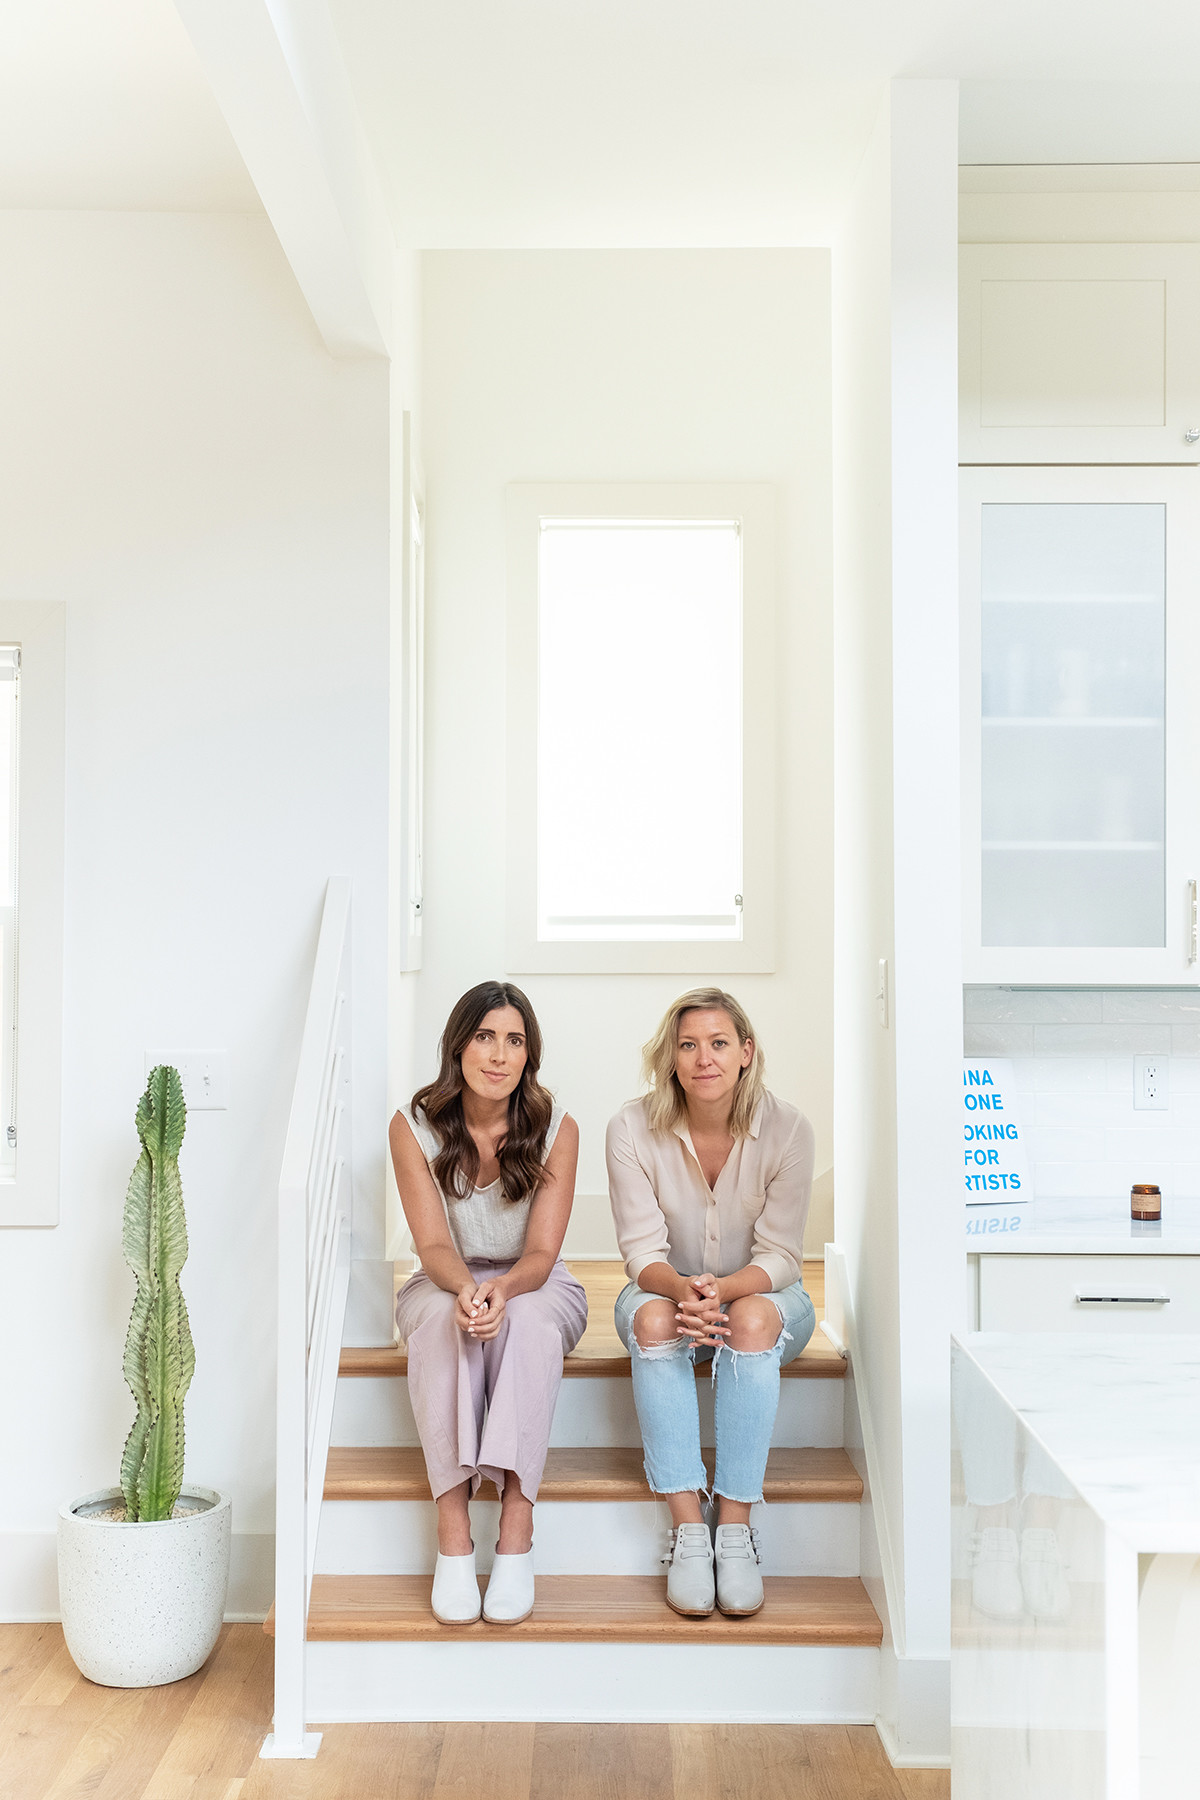 Milkglass Creative co-founders Mary Hooper and Amy Stroup sit inside their studio.